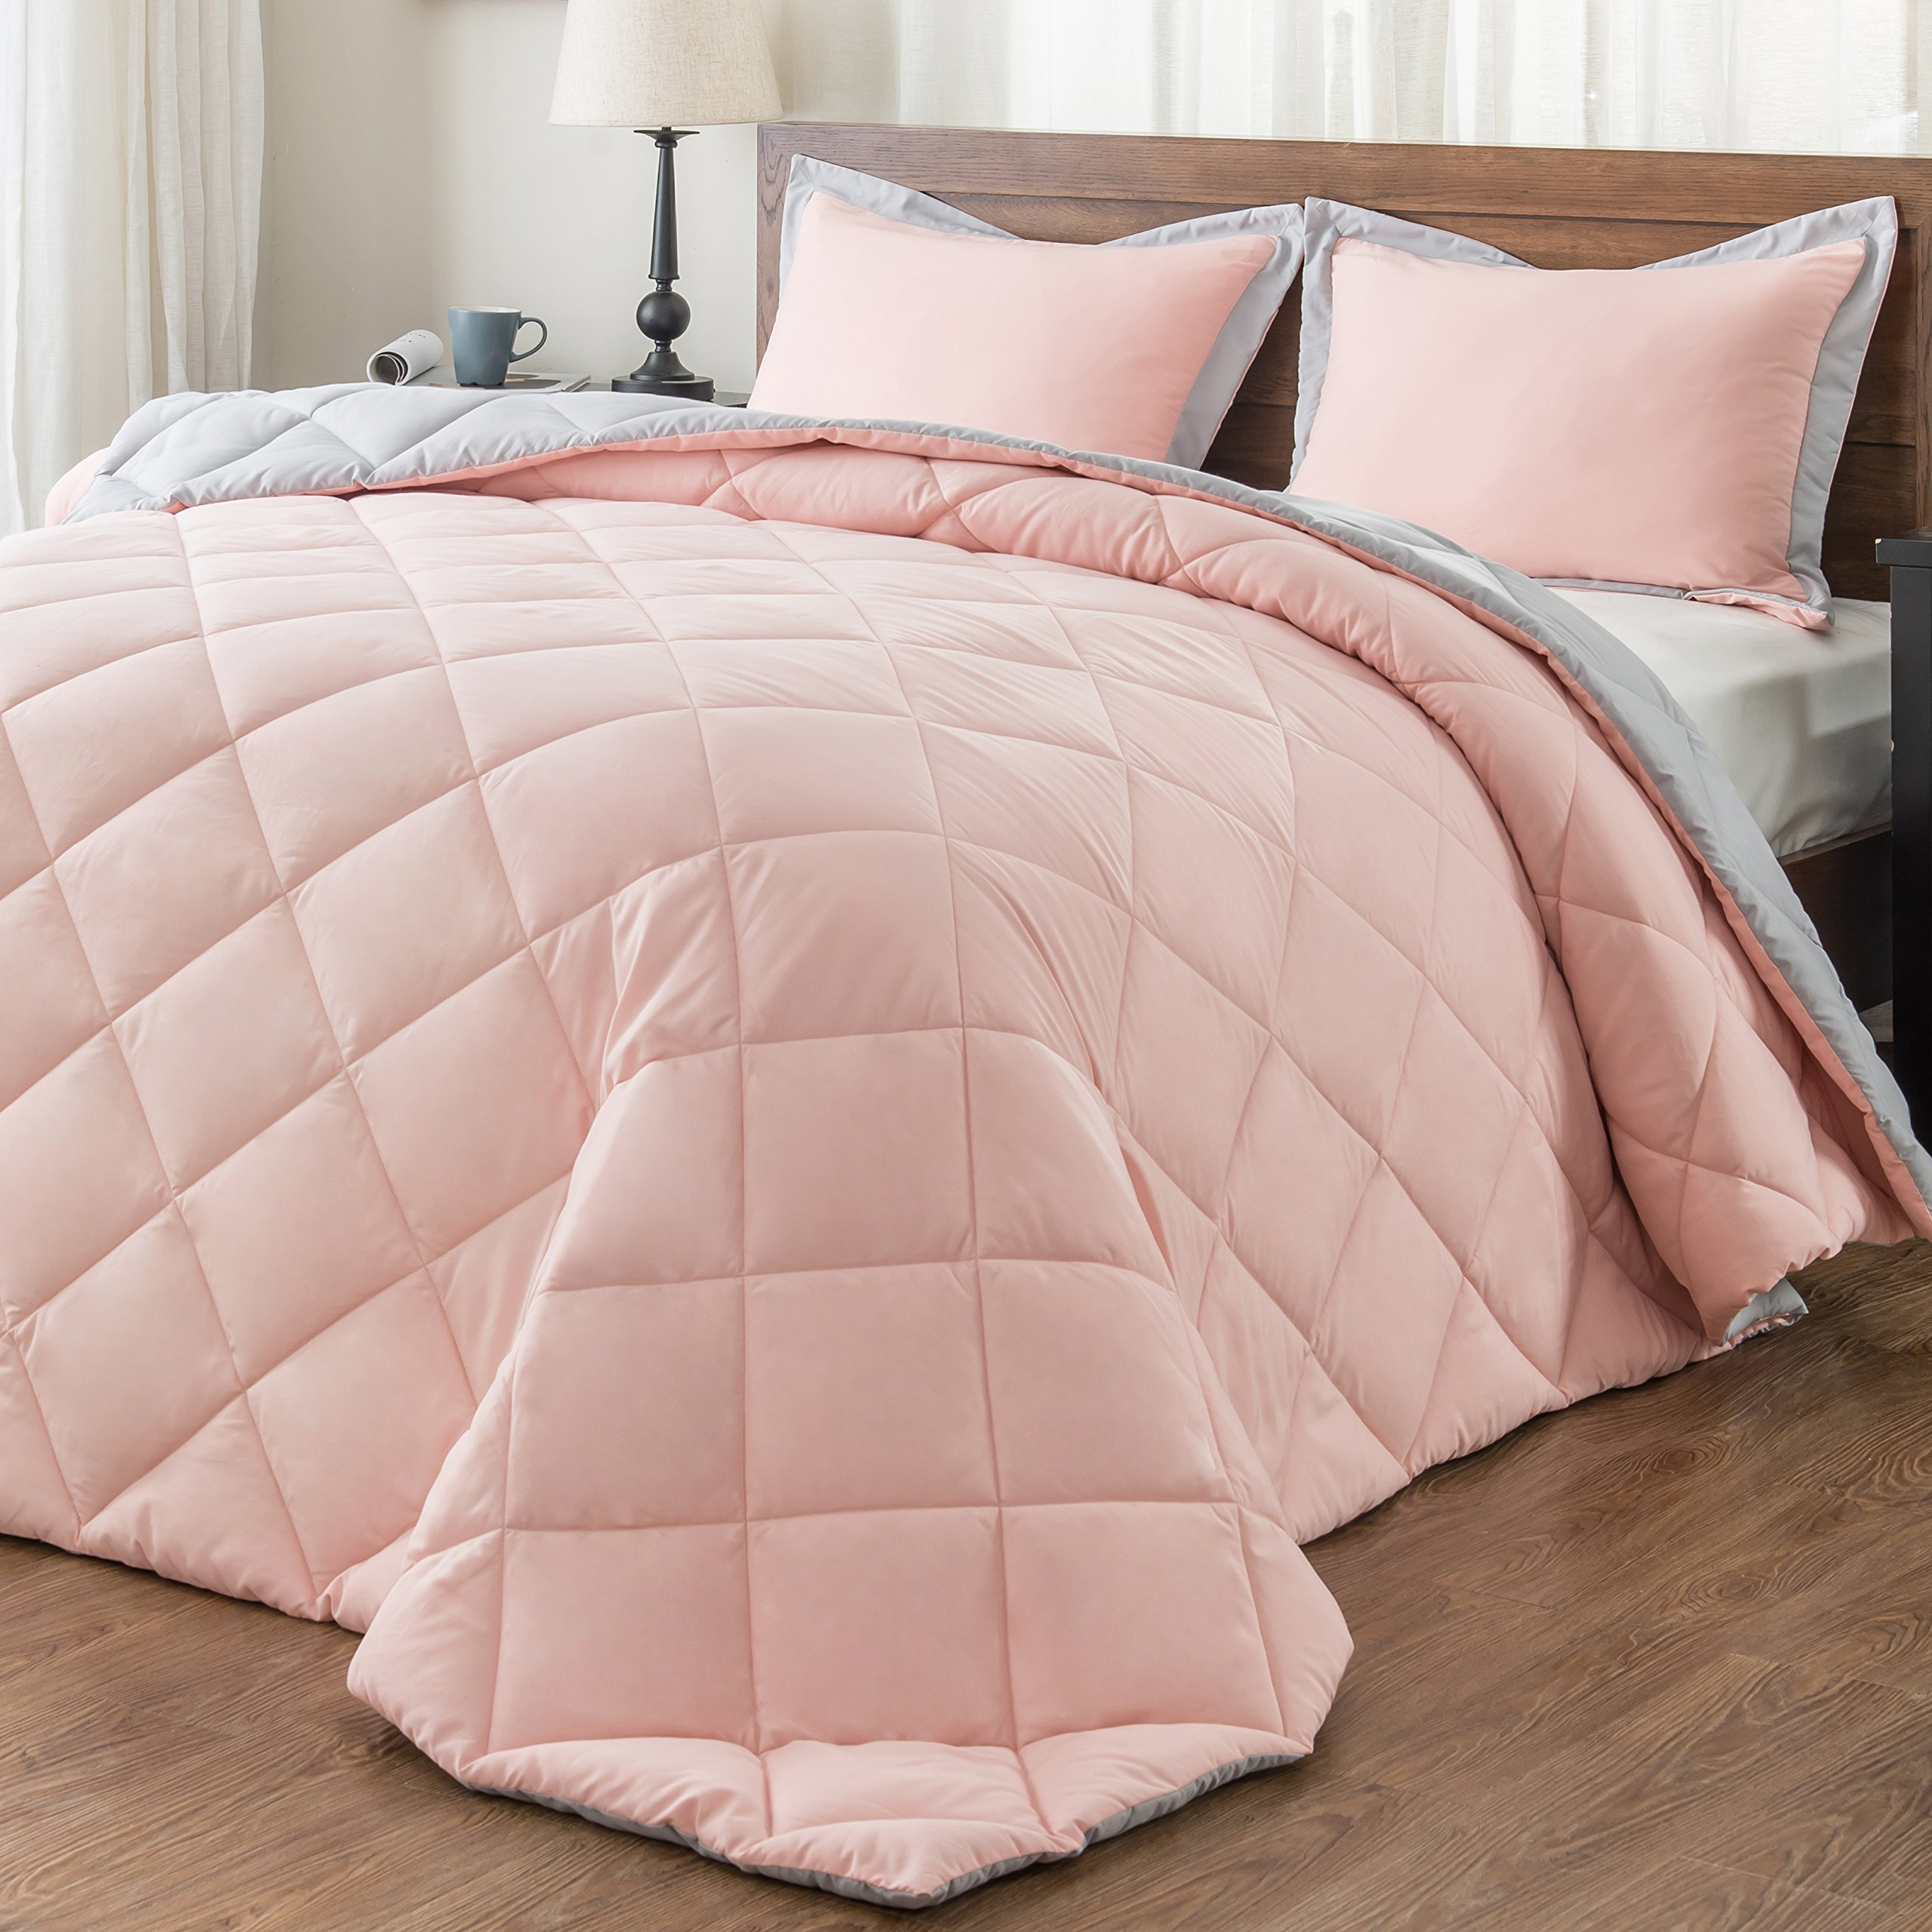 downluxe Back to School Lightweight Solid Comforter Set (Twin) with 1 Pillow Sham - 2-Piece Set - Coral and Grey - Hypoallergenic Down Alternative Reversible Comforter